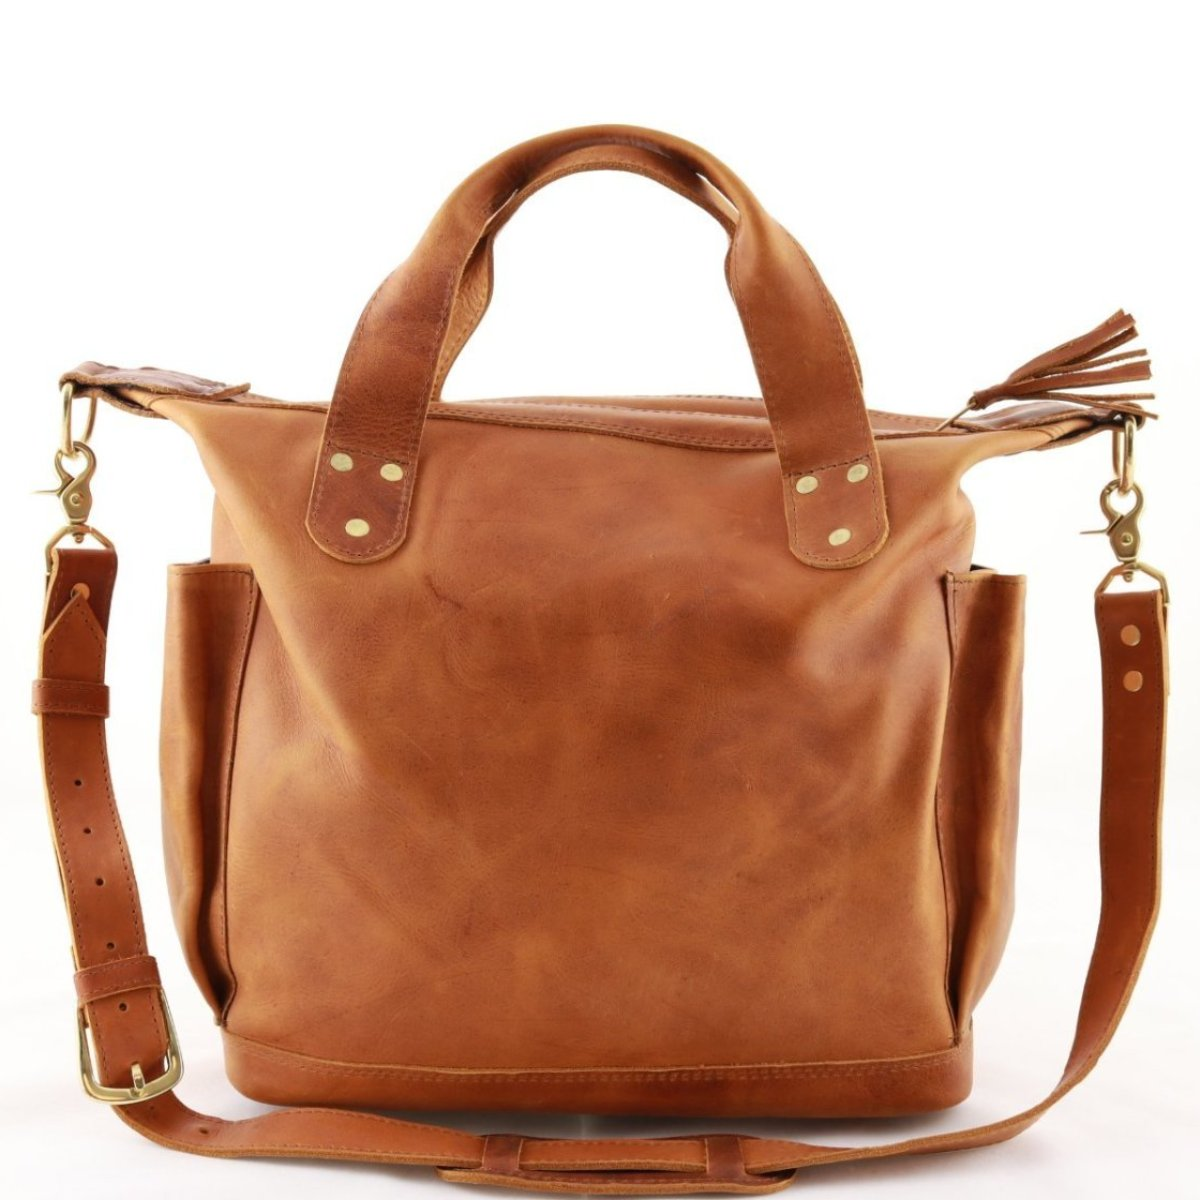 Canela Leather Day Bag with side pockets